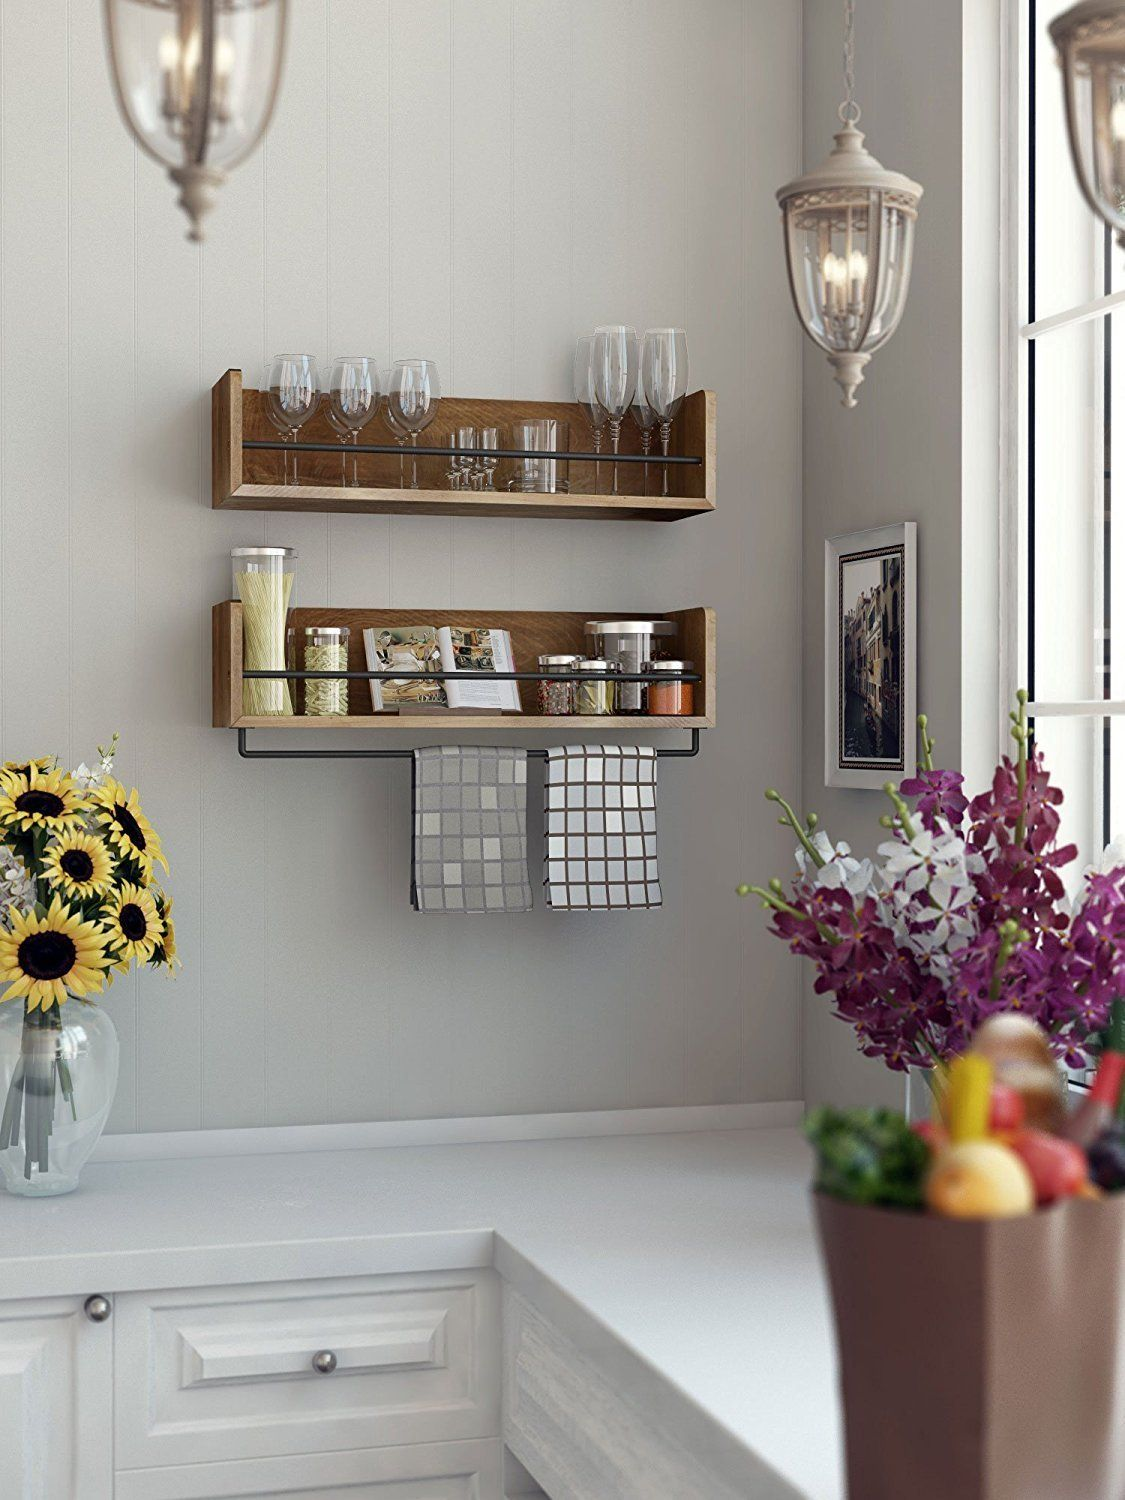 Rustic Kitchen Wood Wall Shelf with Metal Rail